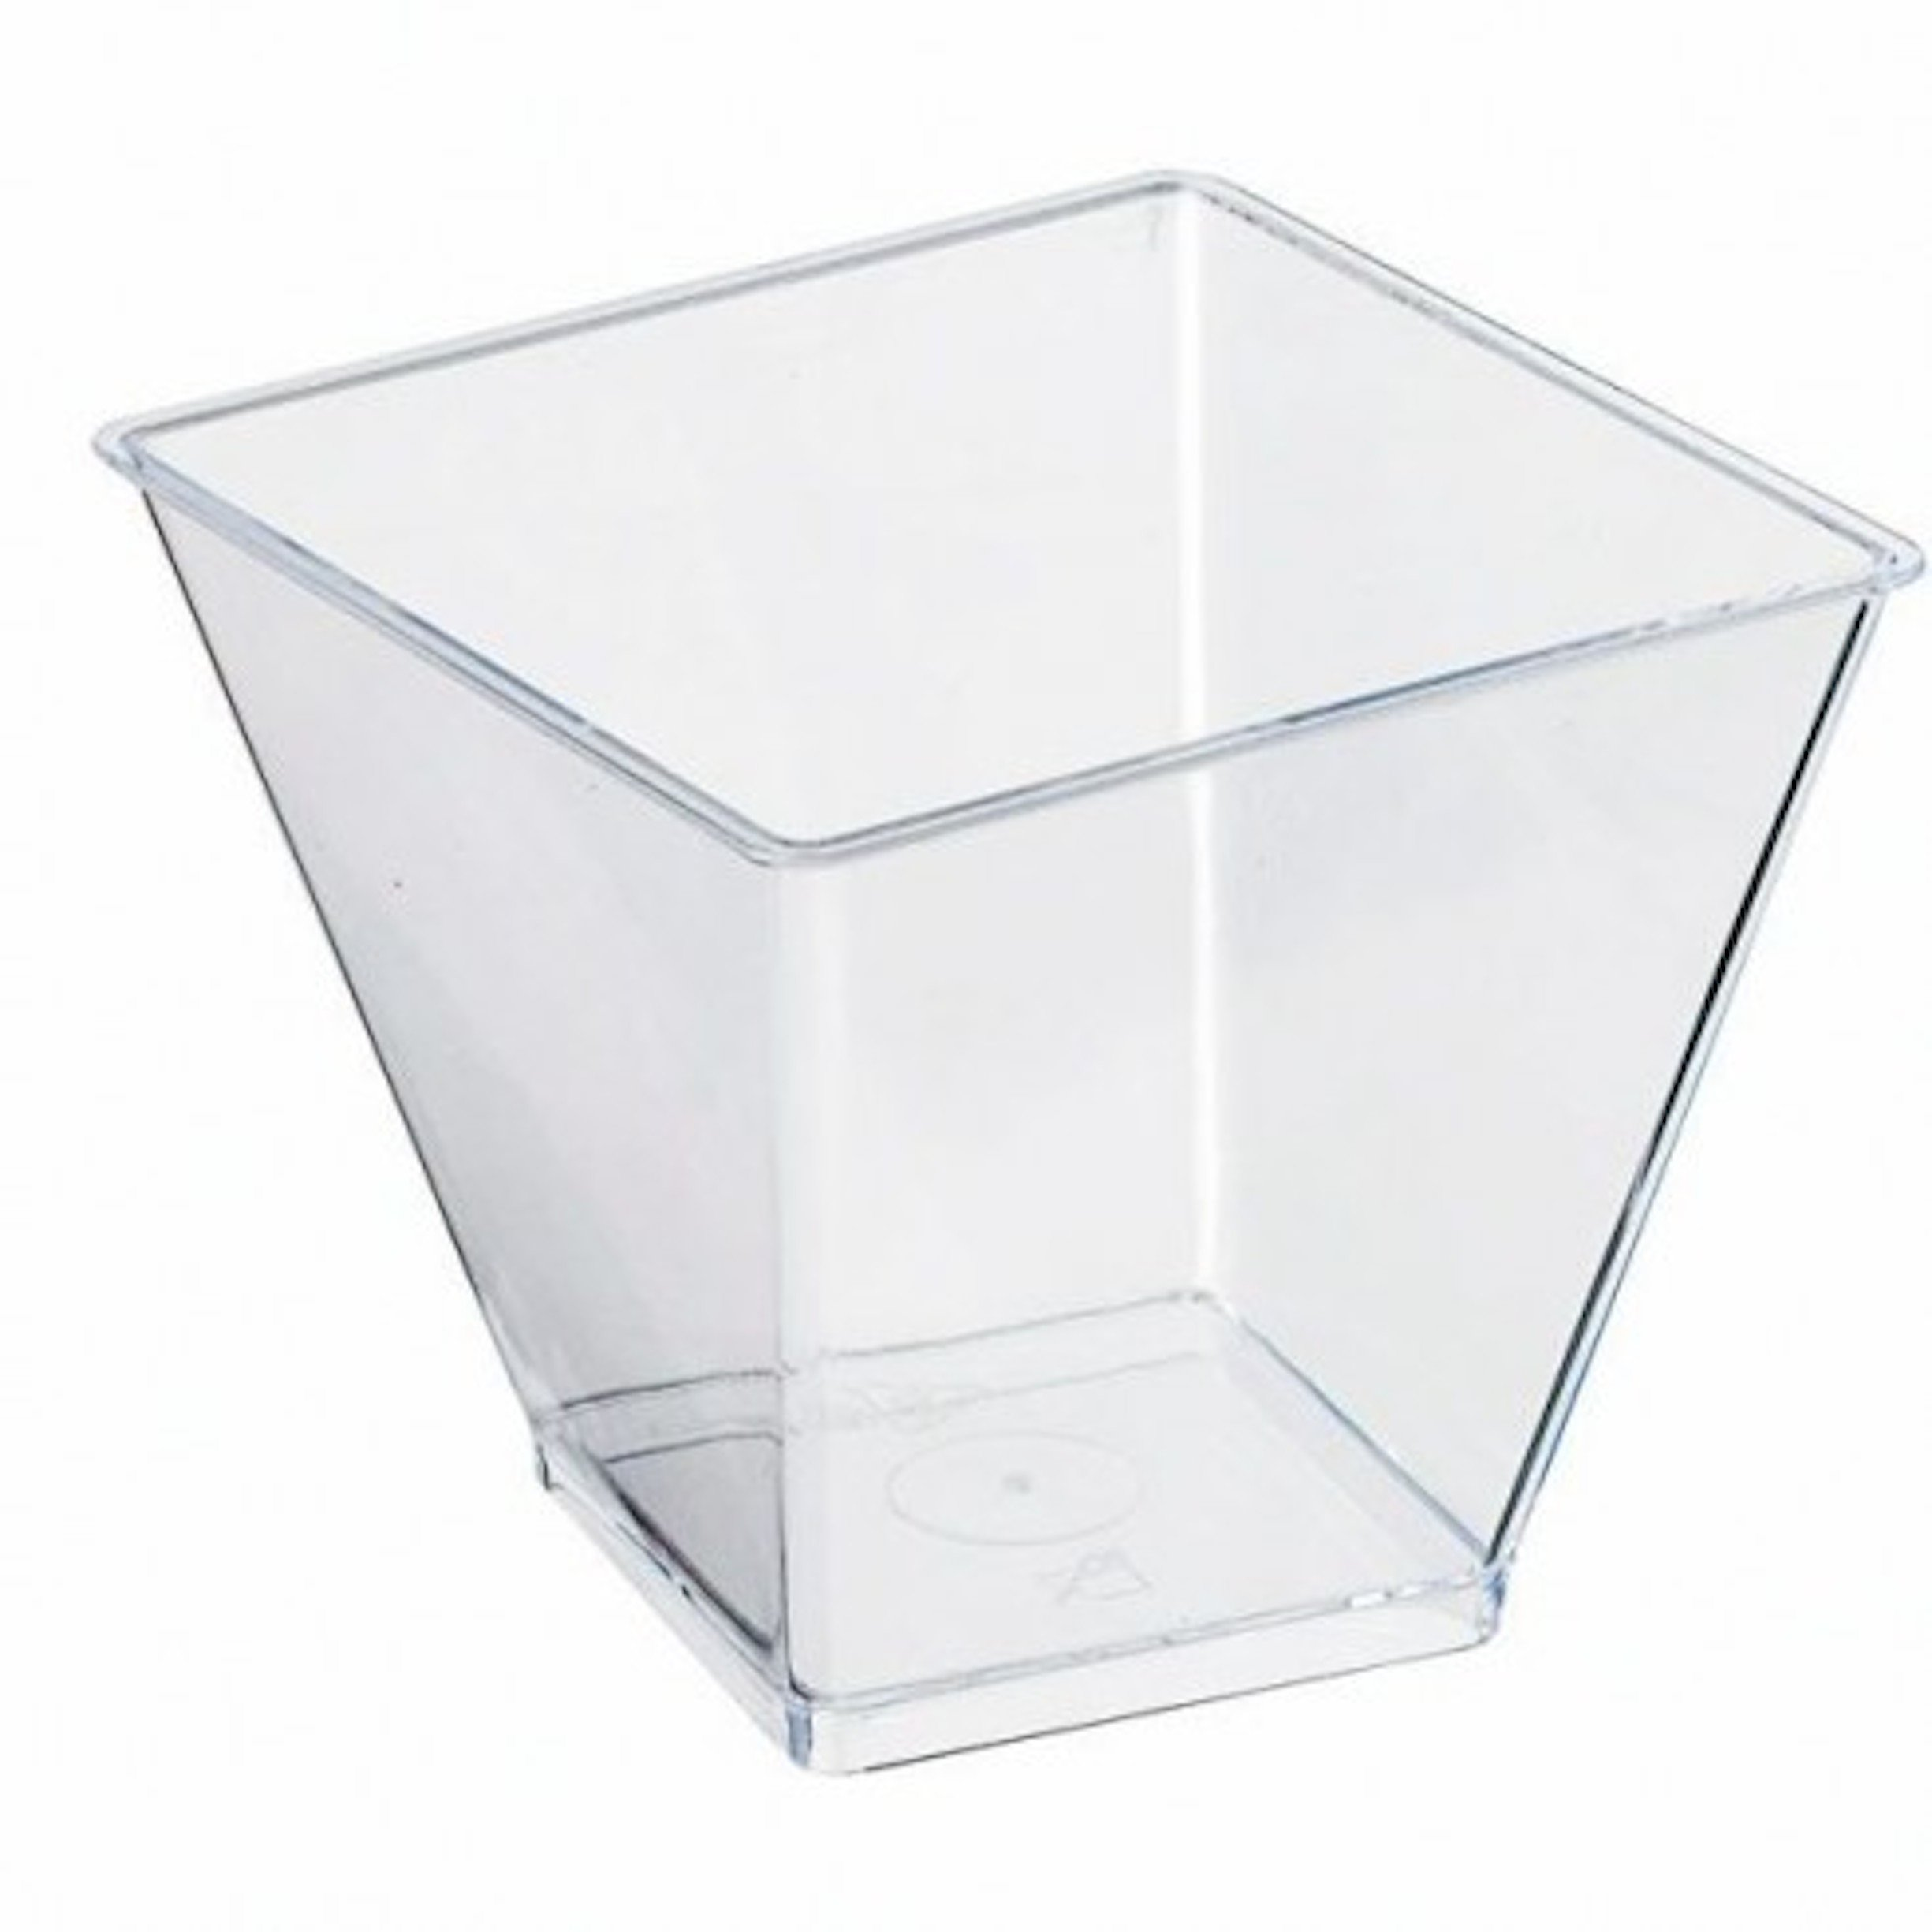 PacknWood Square Clear Plastic Cup, 2.4'' x 2.4'' Top, 1.5'' x 1.5'' Base, 2.24'' Height (Case of 600) by PacknWood